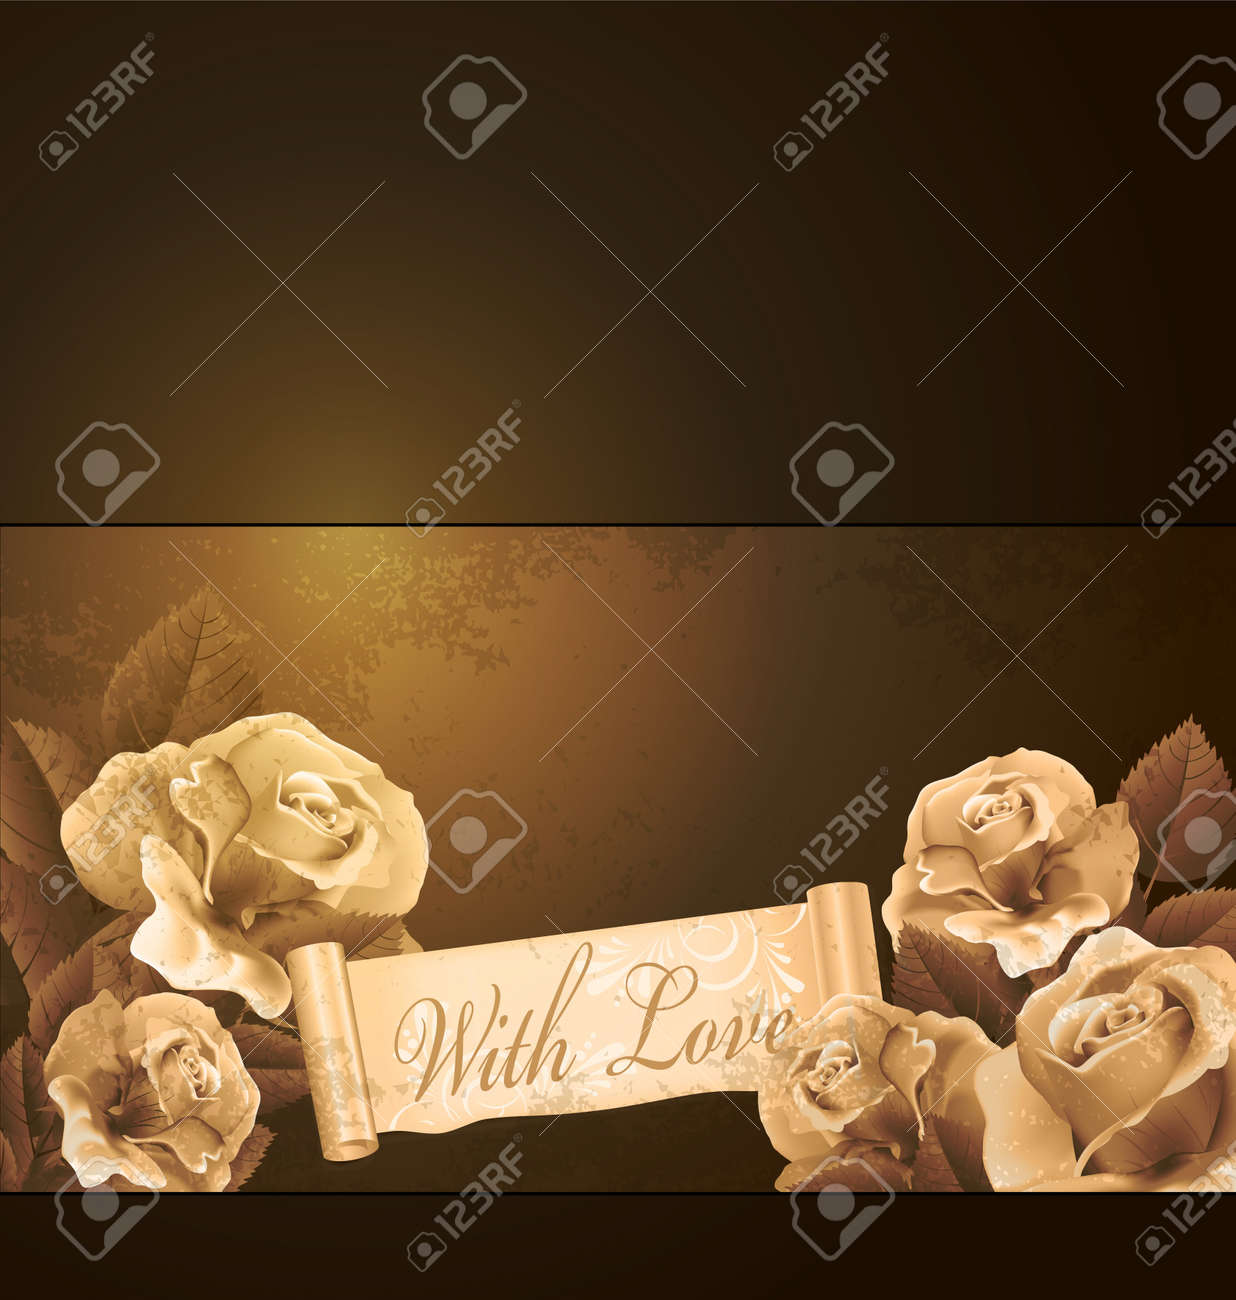 grunge, romantic, vintage background with roses Stock Vector - 10049553